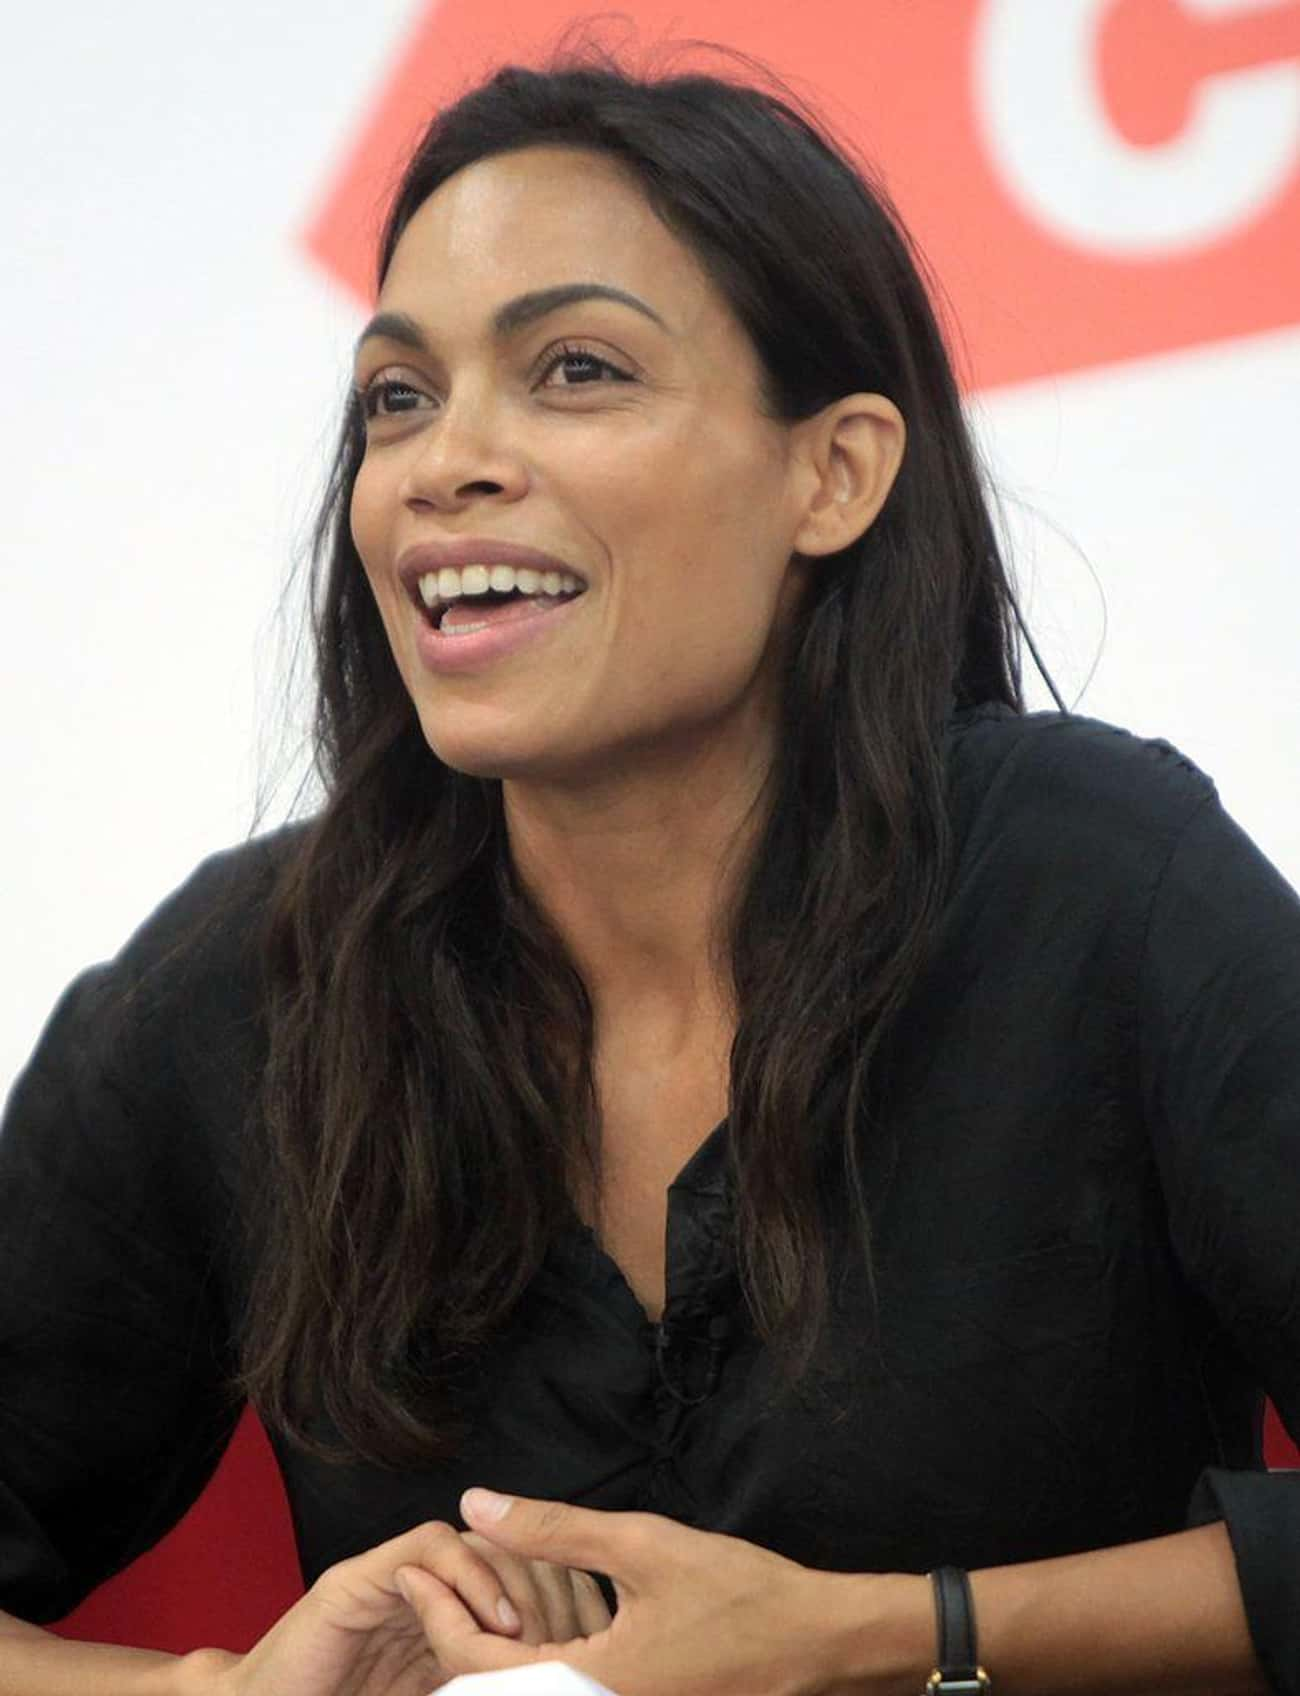 Rosario Dawson Licked By Mom is listed (or ranked) 3 on the list The 7 Weirdest Parental Punishments